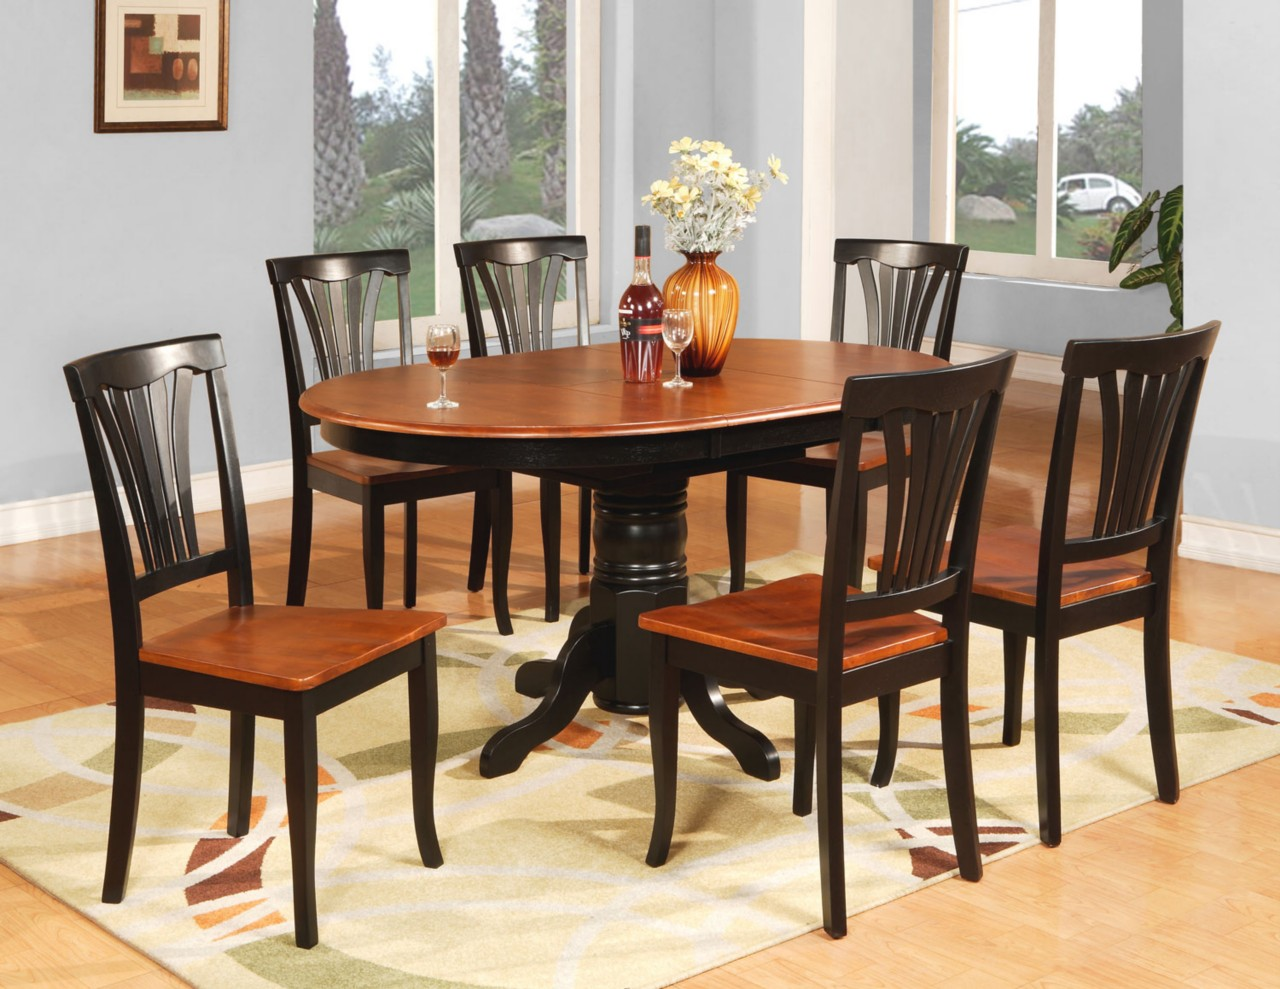 7 pc oval dinette kitchen dining room table 6 chairs ebay ForKitchen Dining Room Chairs